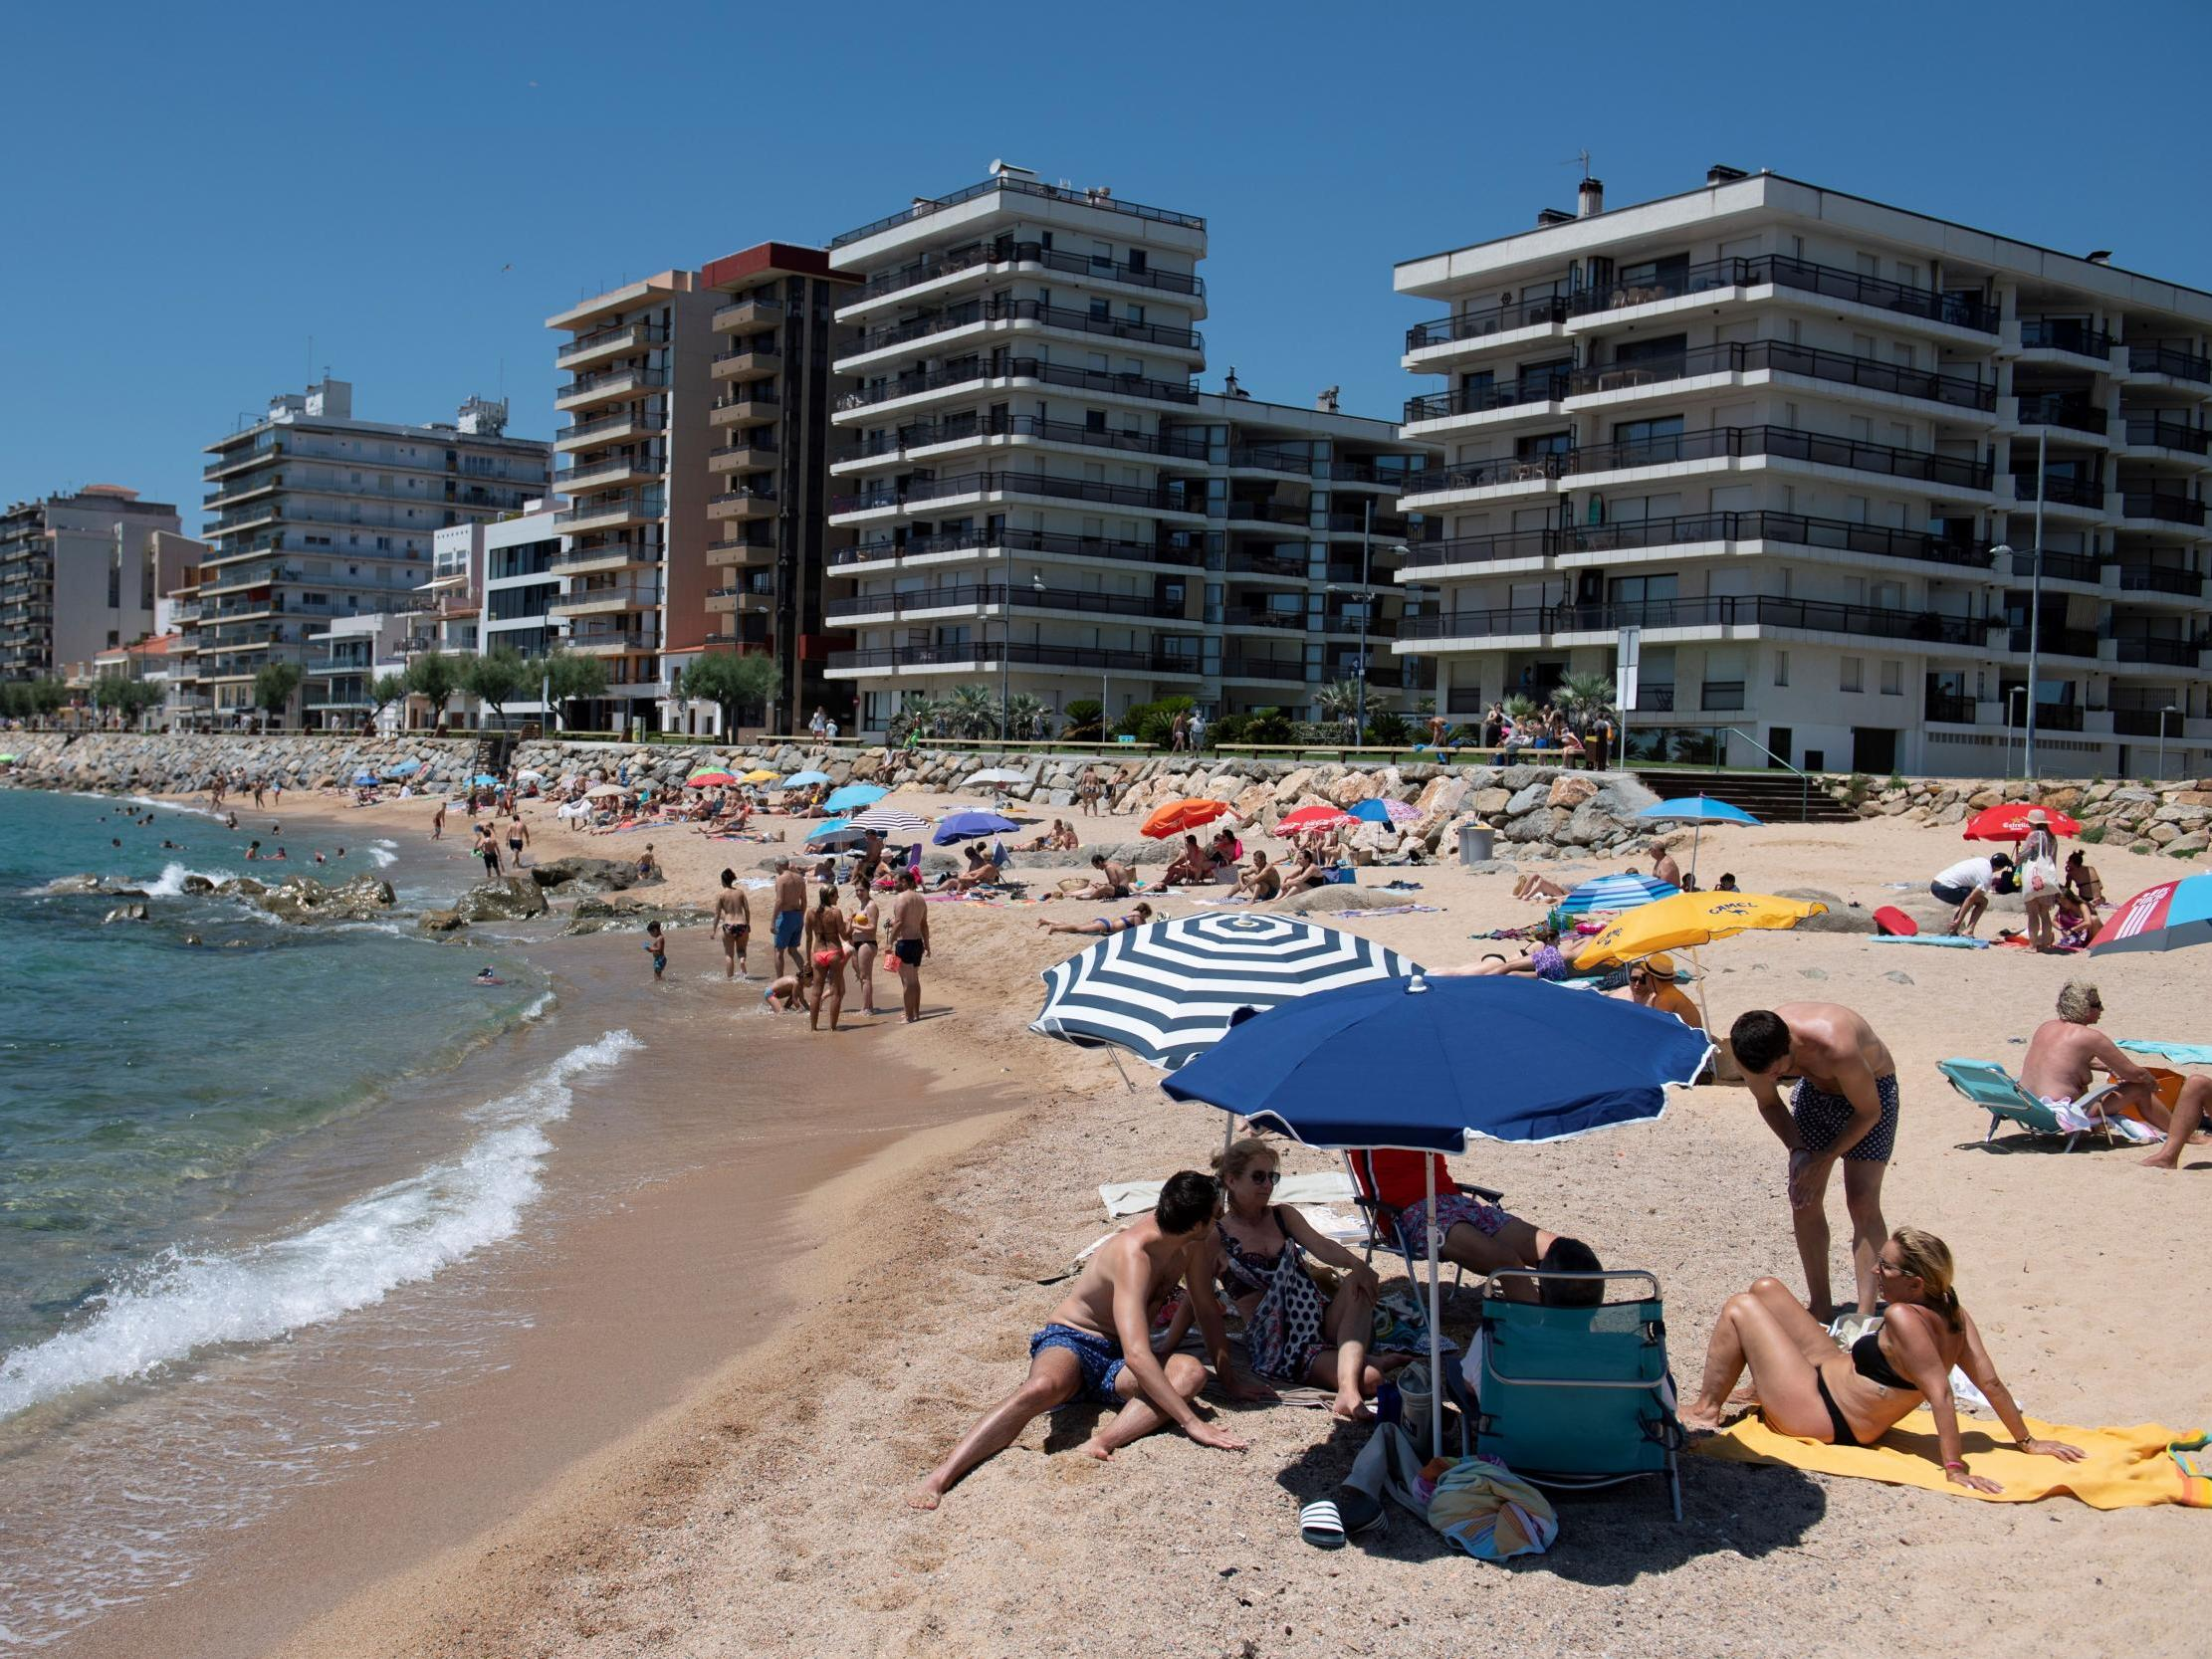 Coronavirus: Popular Spanish beaches 'forced to close due to overcrowding' 2